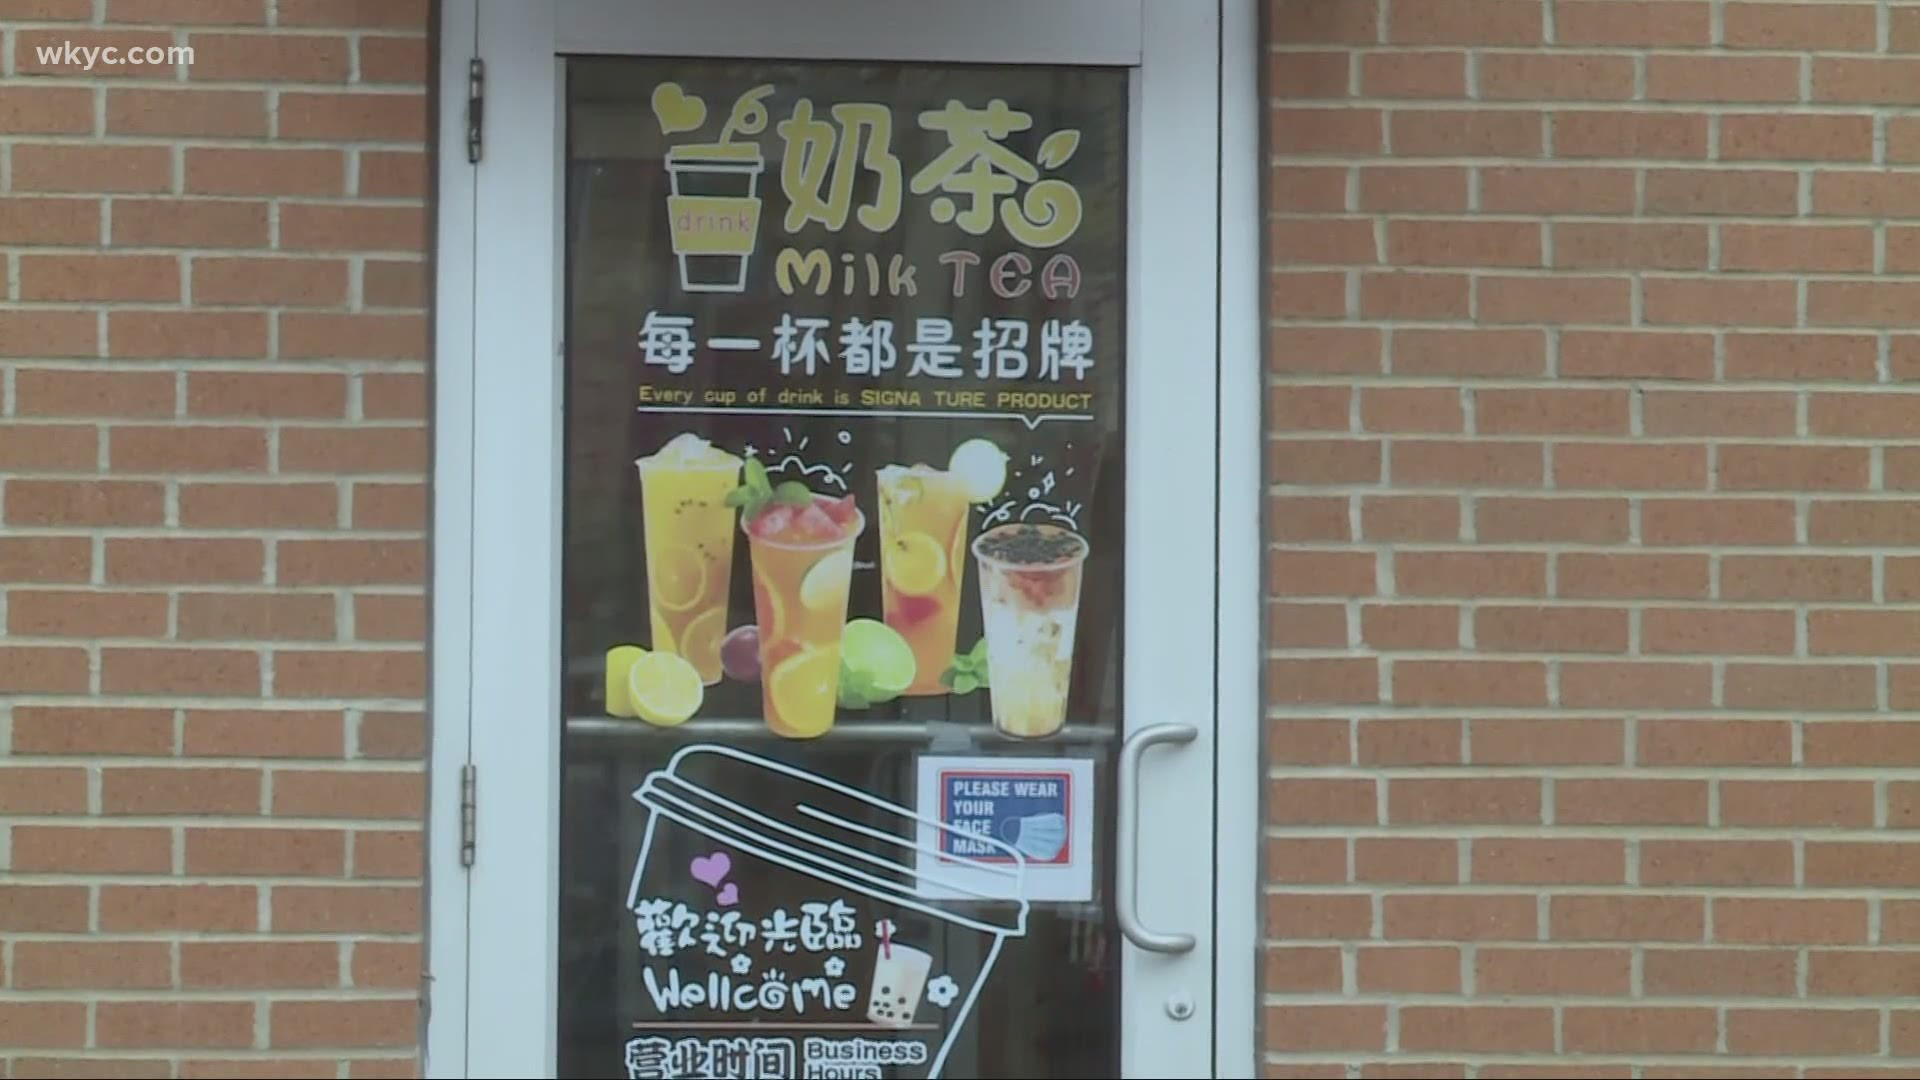 How You Can Help Support Cleveland S Asiatown Restaurants Wkyc Com